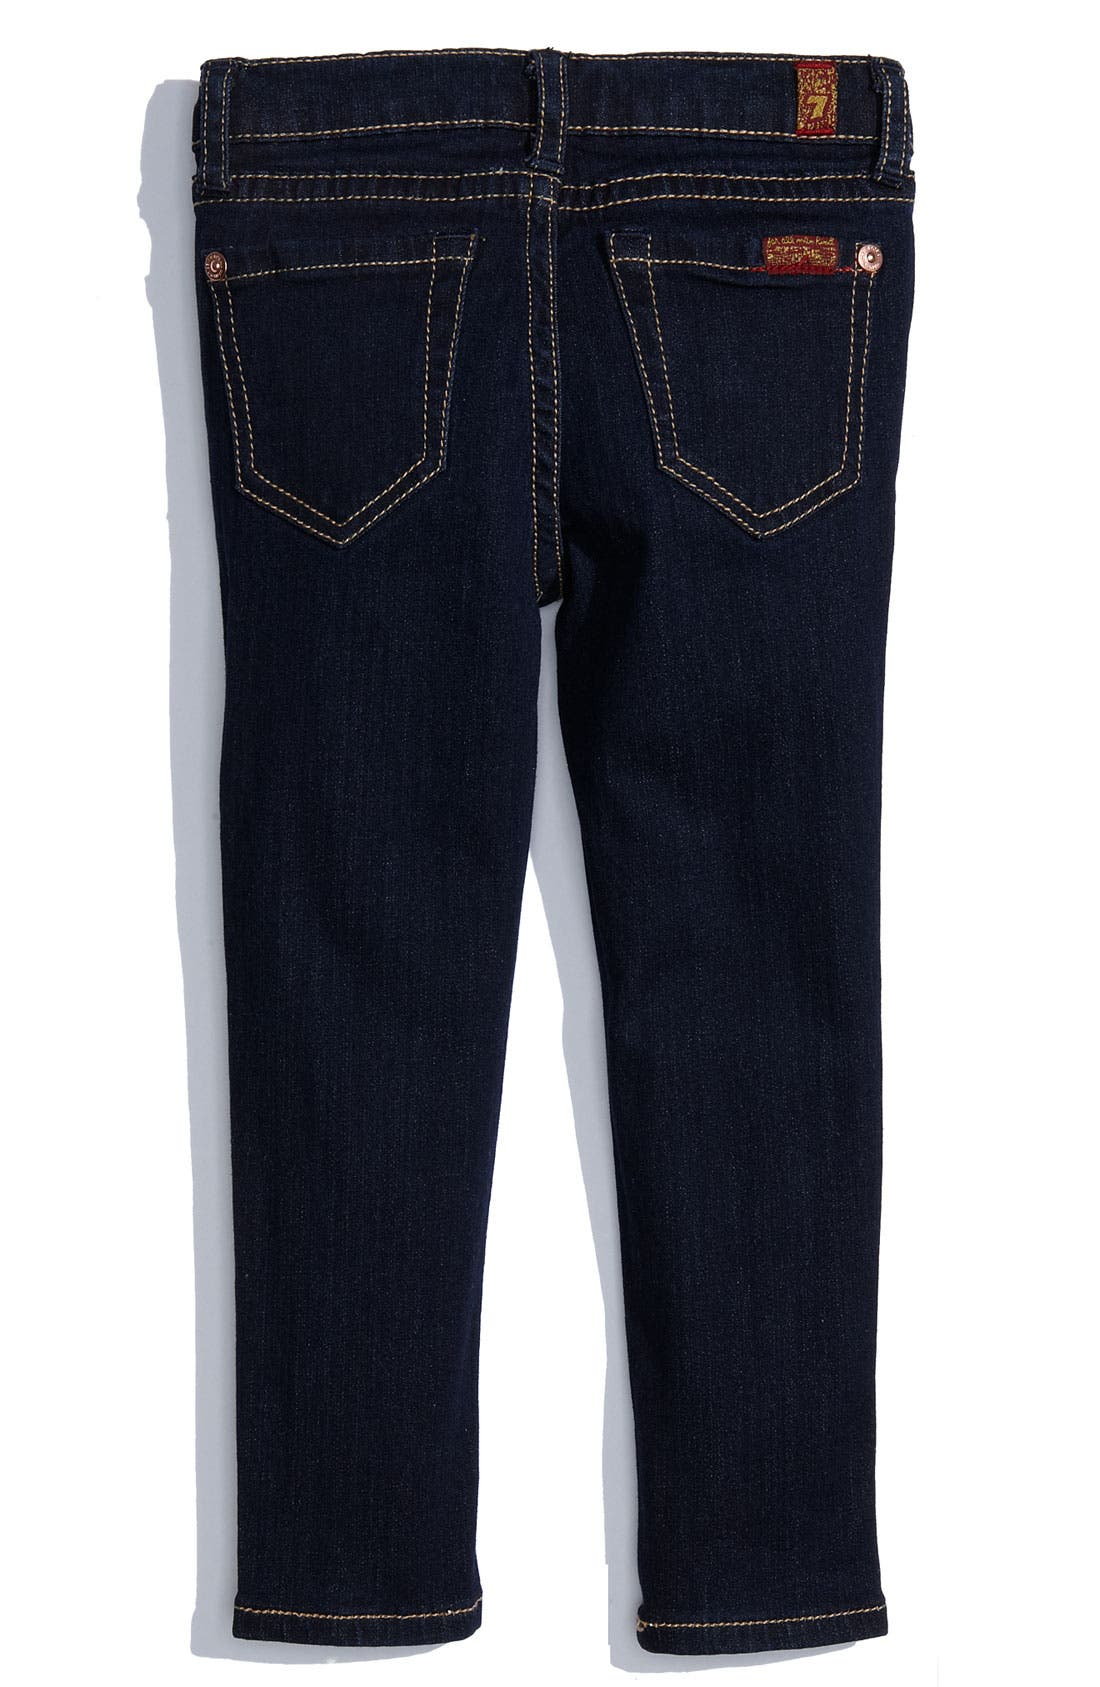 Alternate Image 1 Selected - 7 For All Mankind® Skinny Denim Jeans (Toddler)